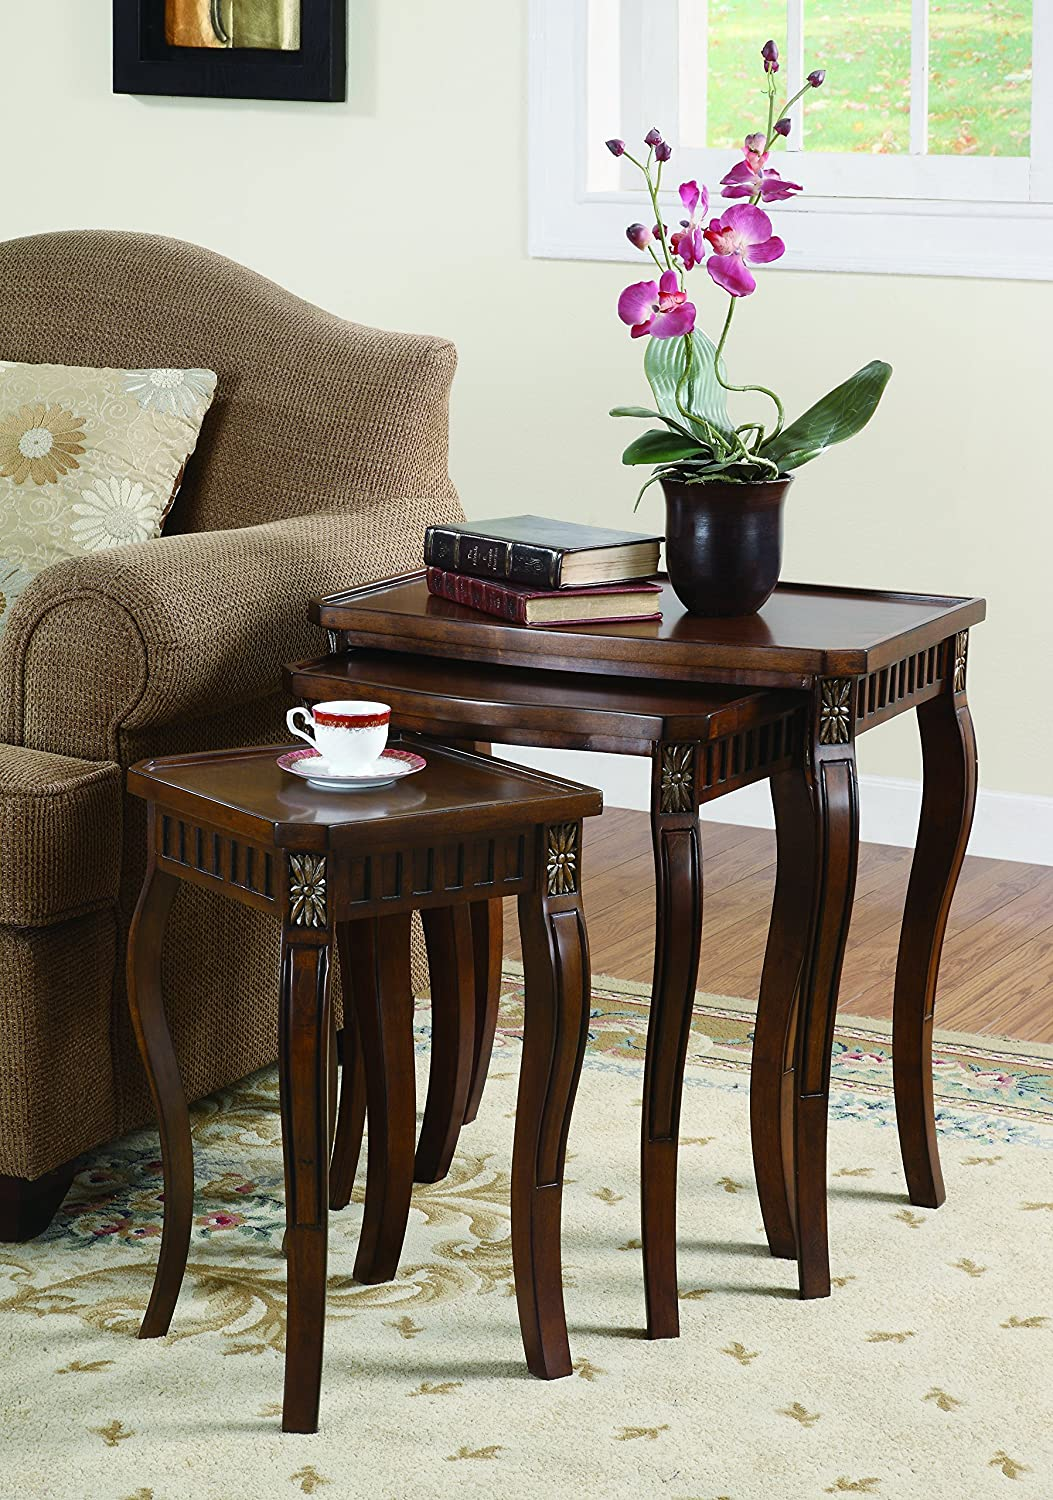 Coaster 3-Piece Curved Leg Nesting Table Set, Brown